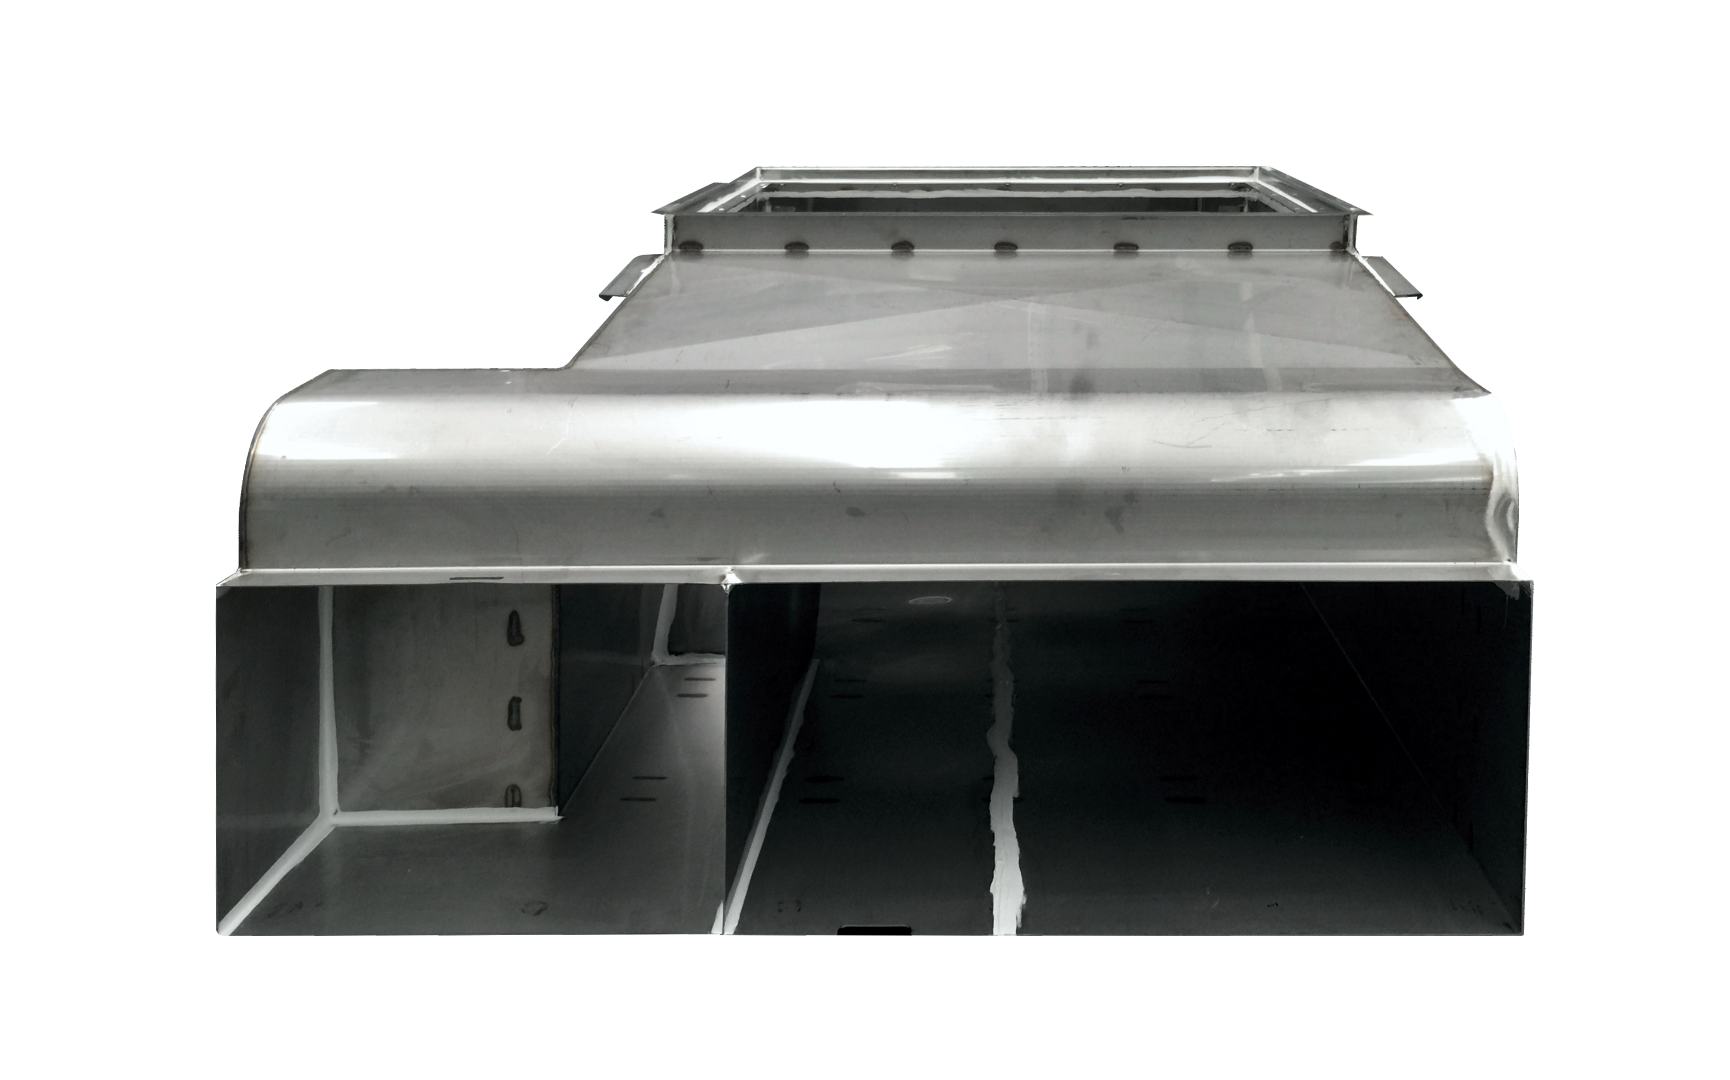 Train Air Conditioning Duct Metaltex Australia